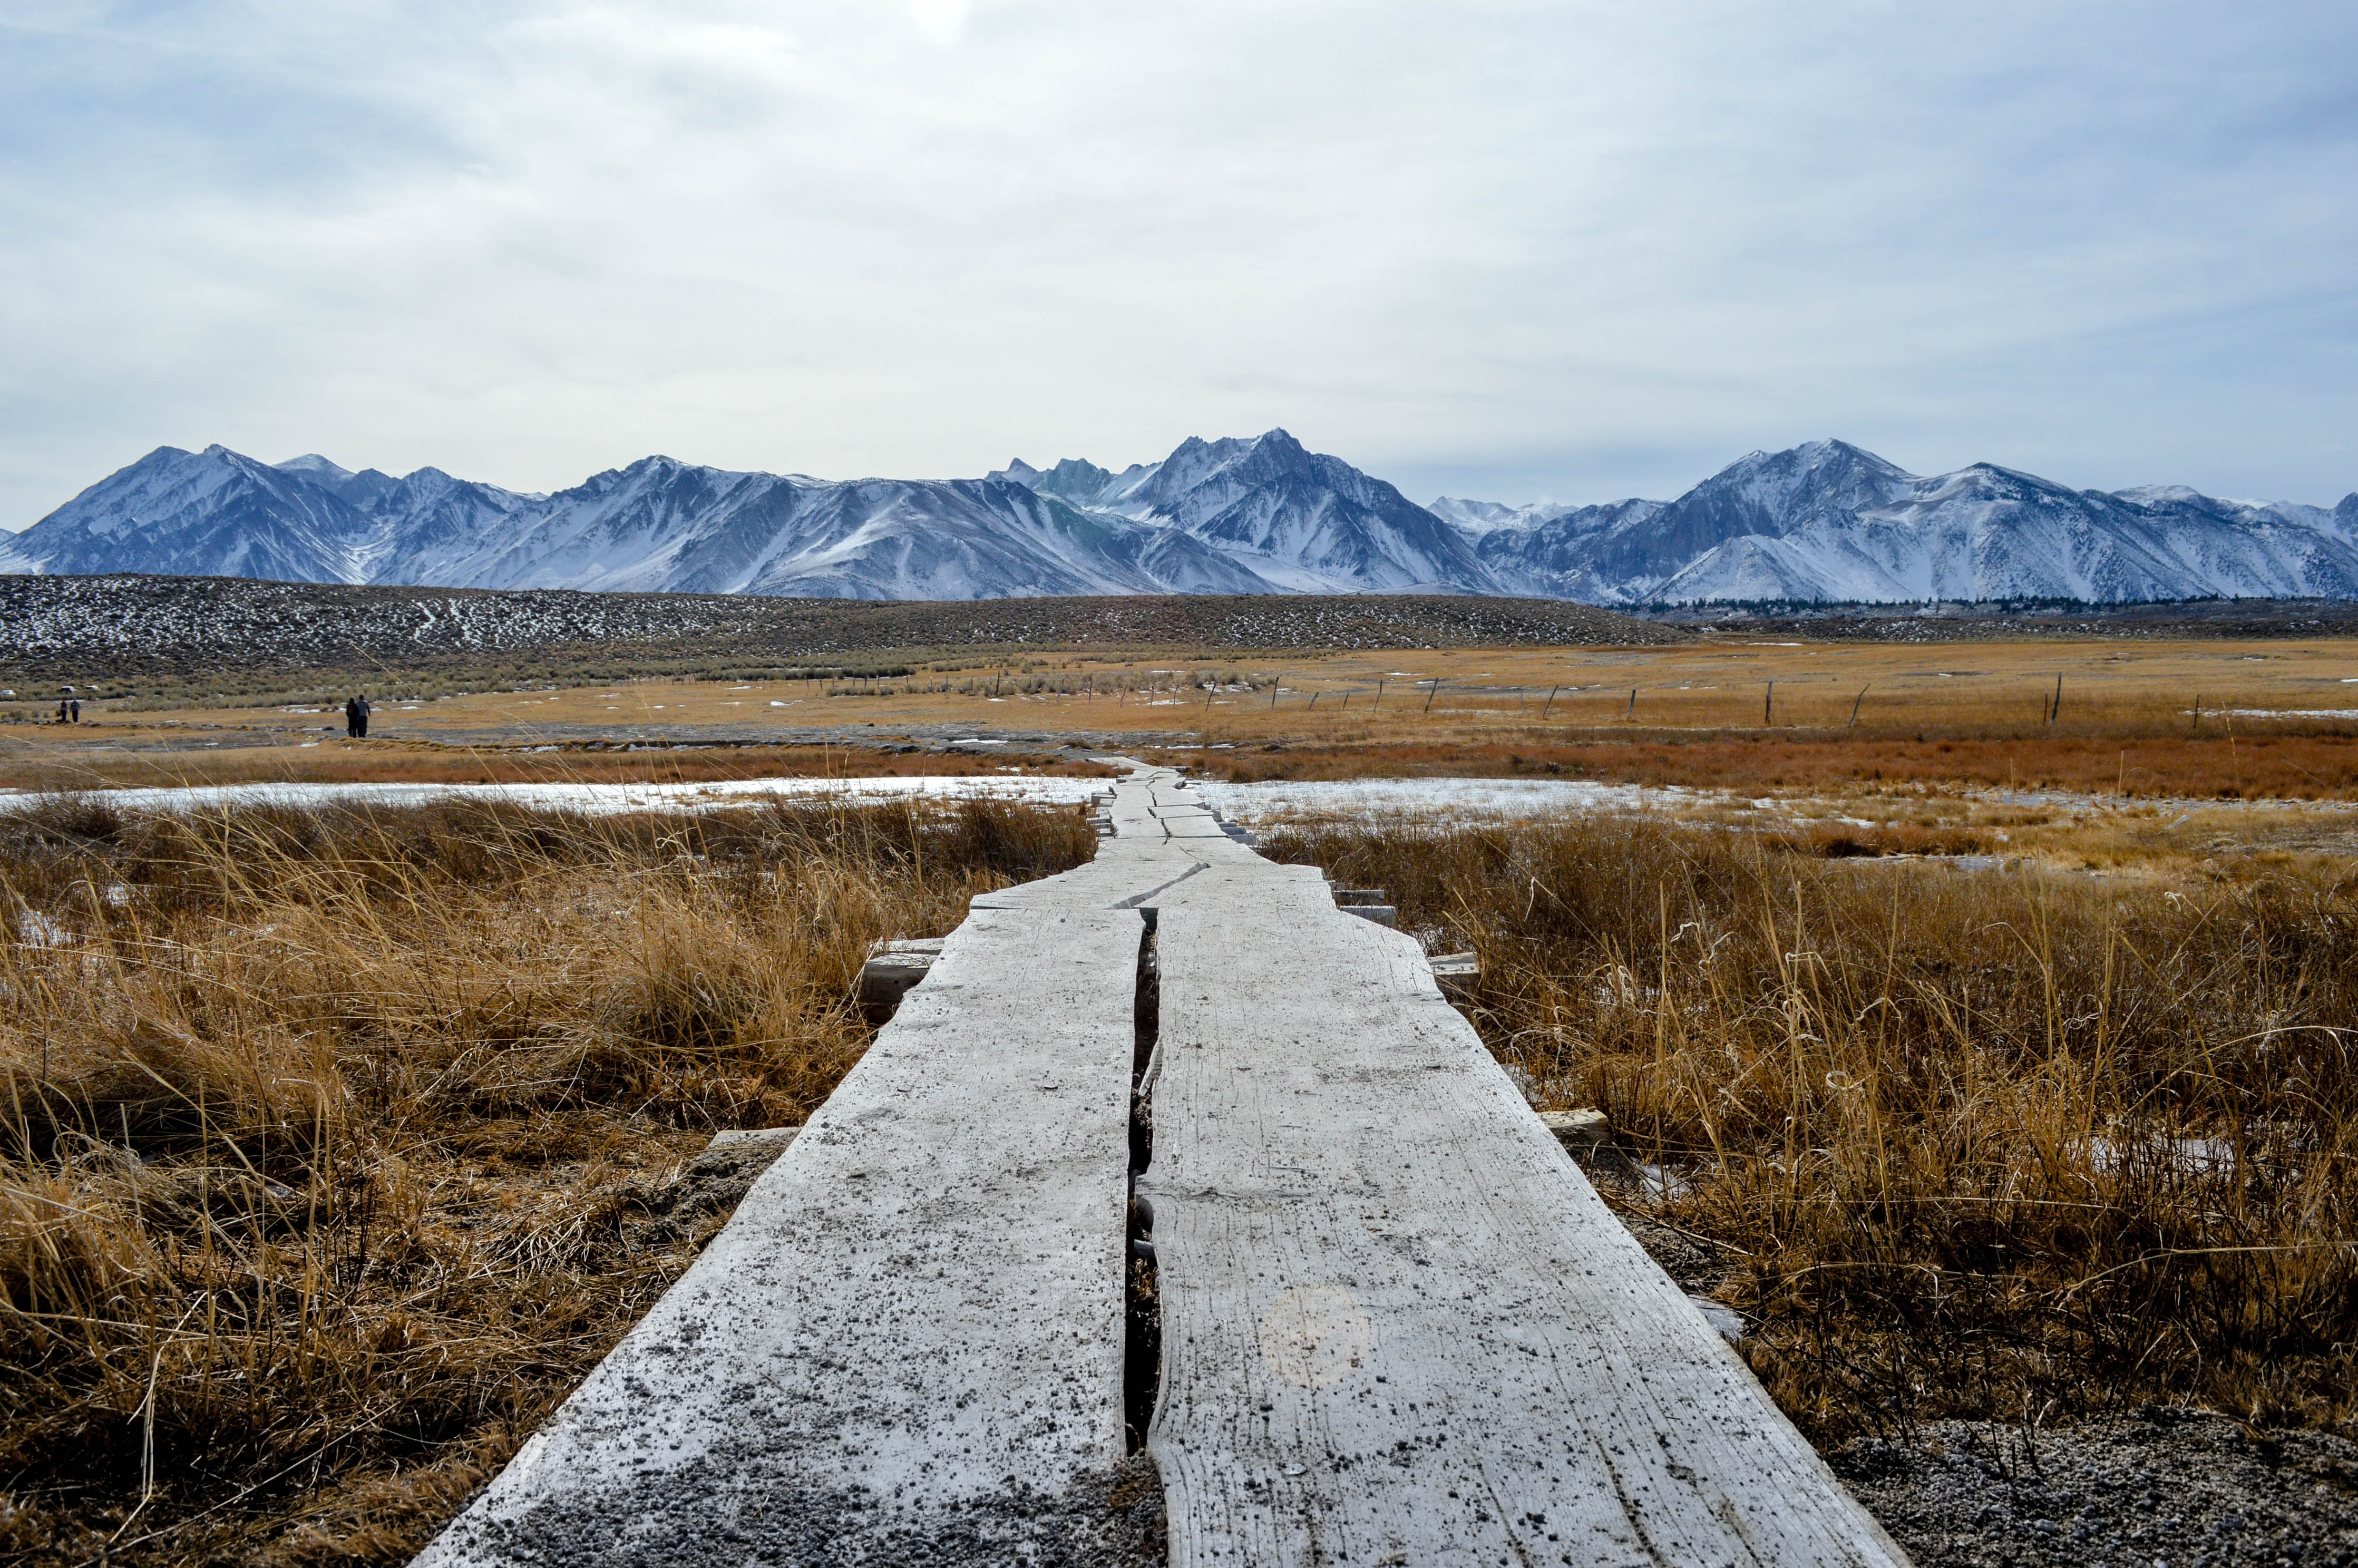 Walking path leads through barren brush toward snowy mountains